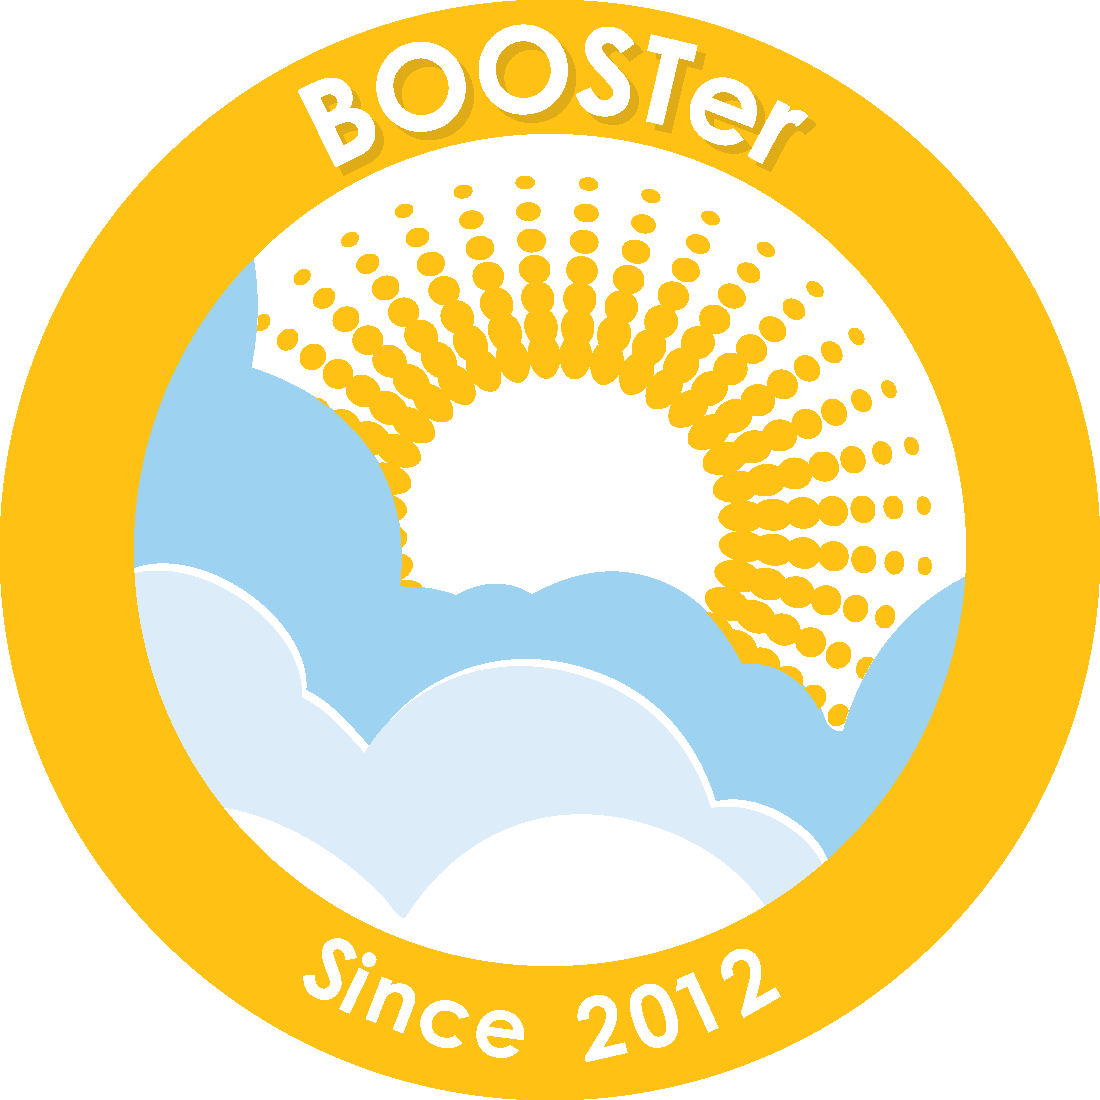 2012 BOOSTer Since badge